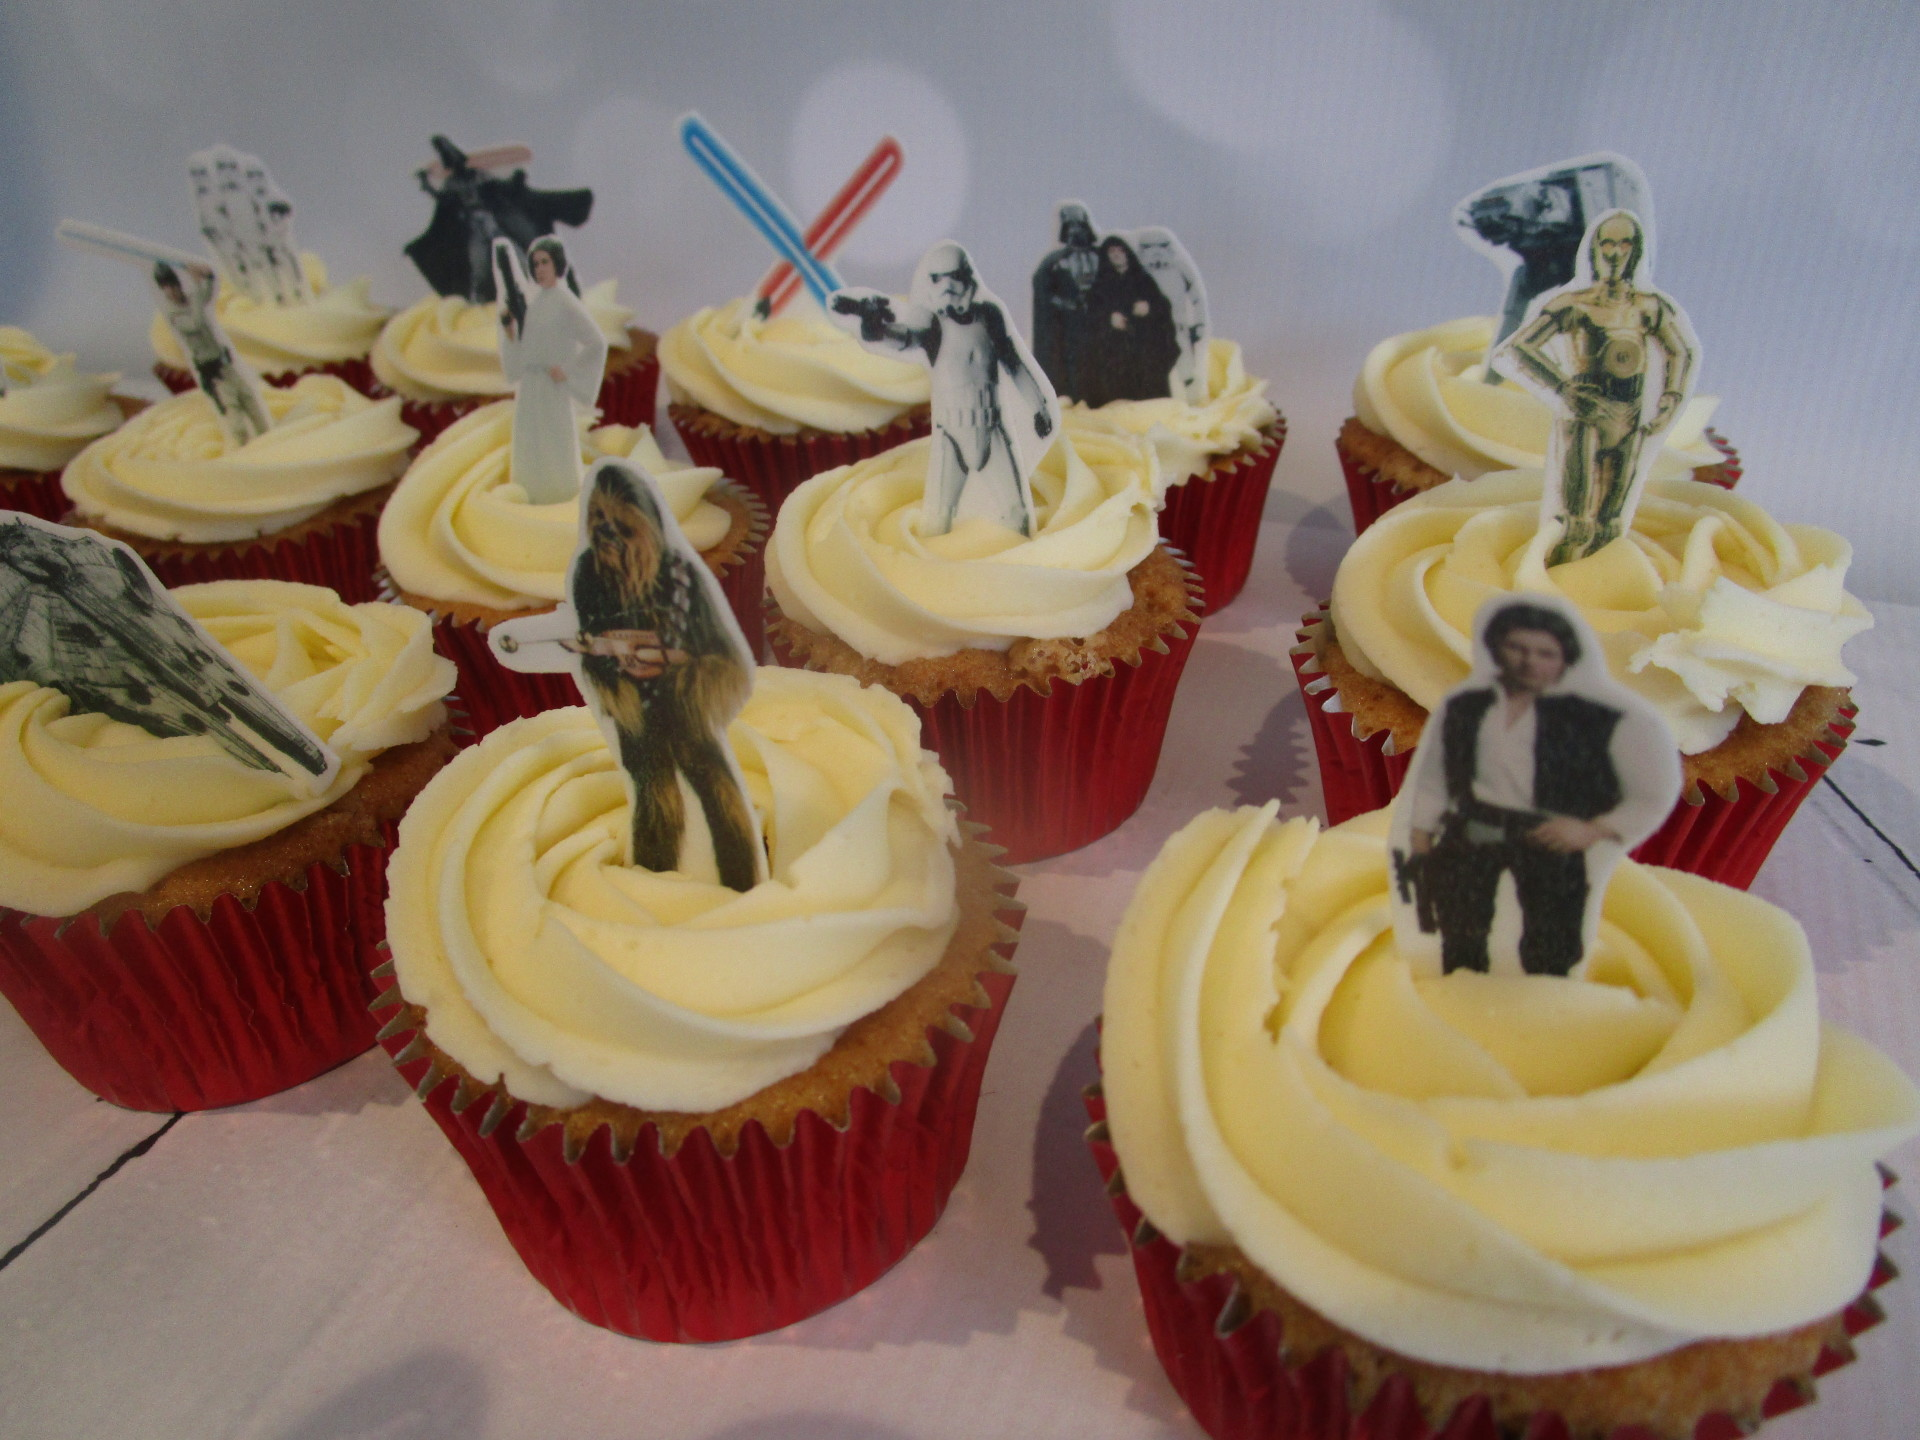 Vanilla Cupcakes with Wafer Star Wars Toppers